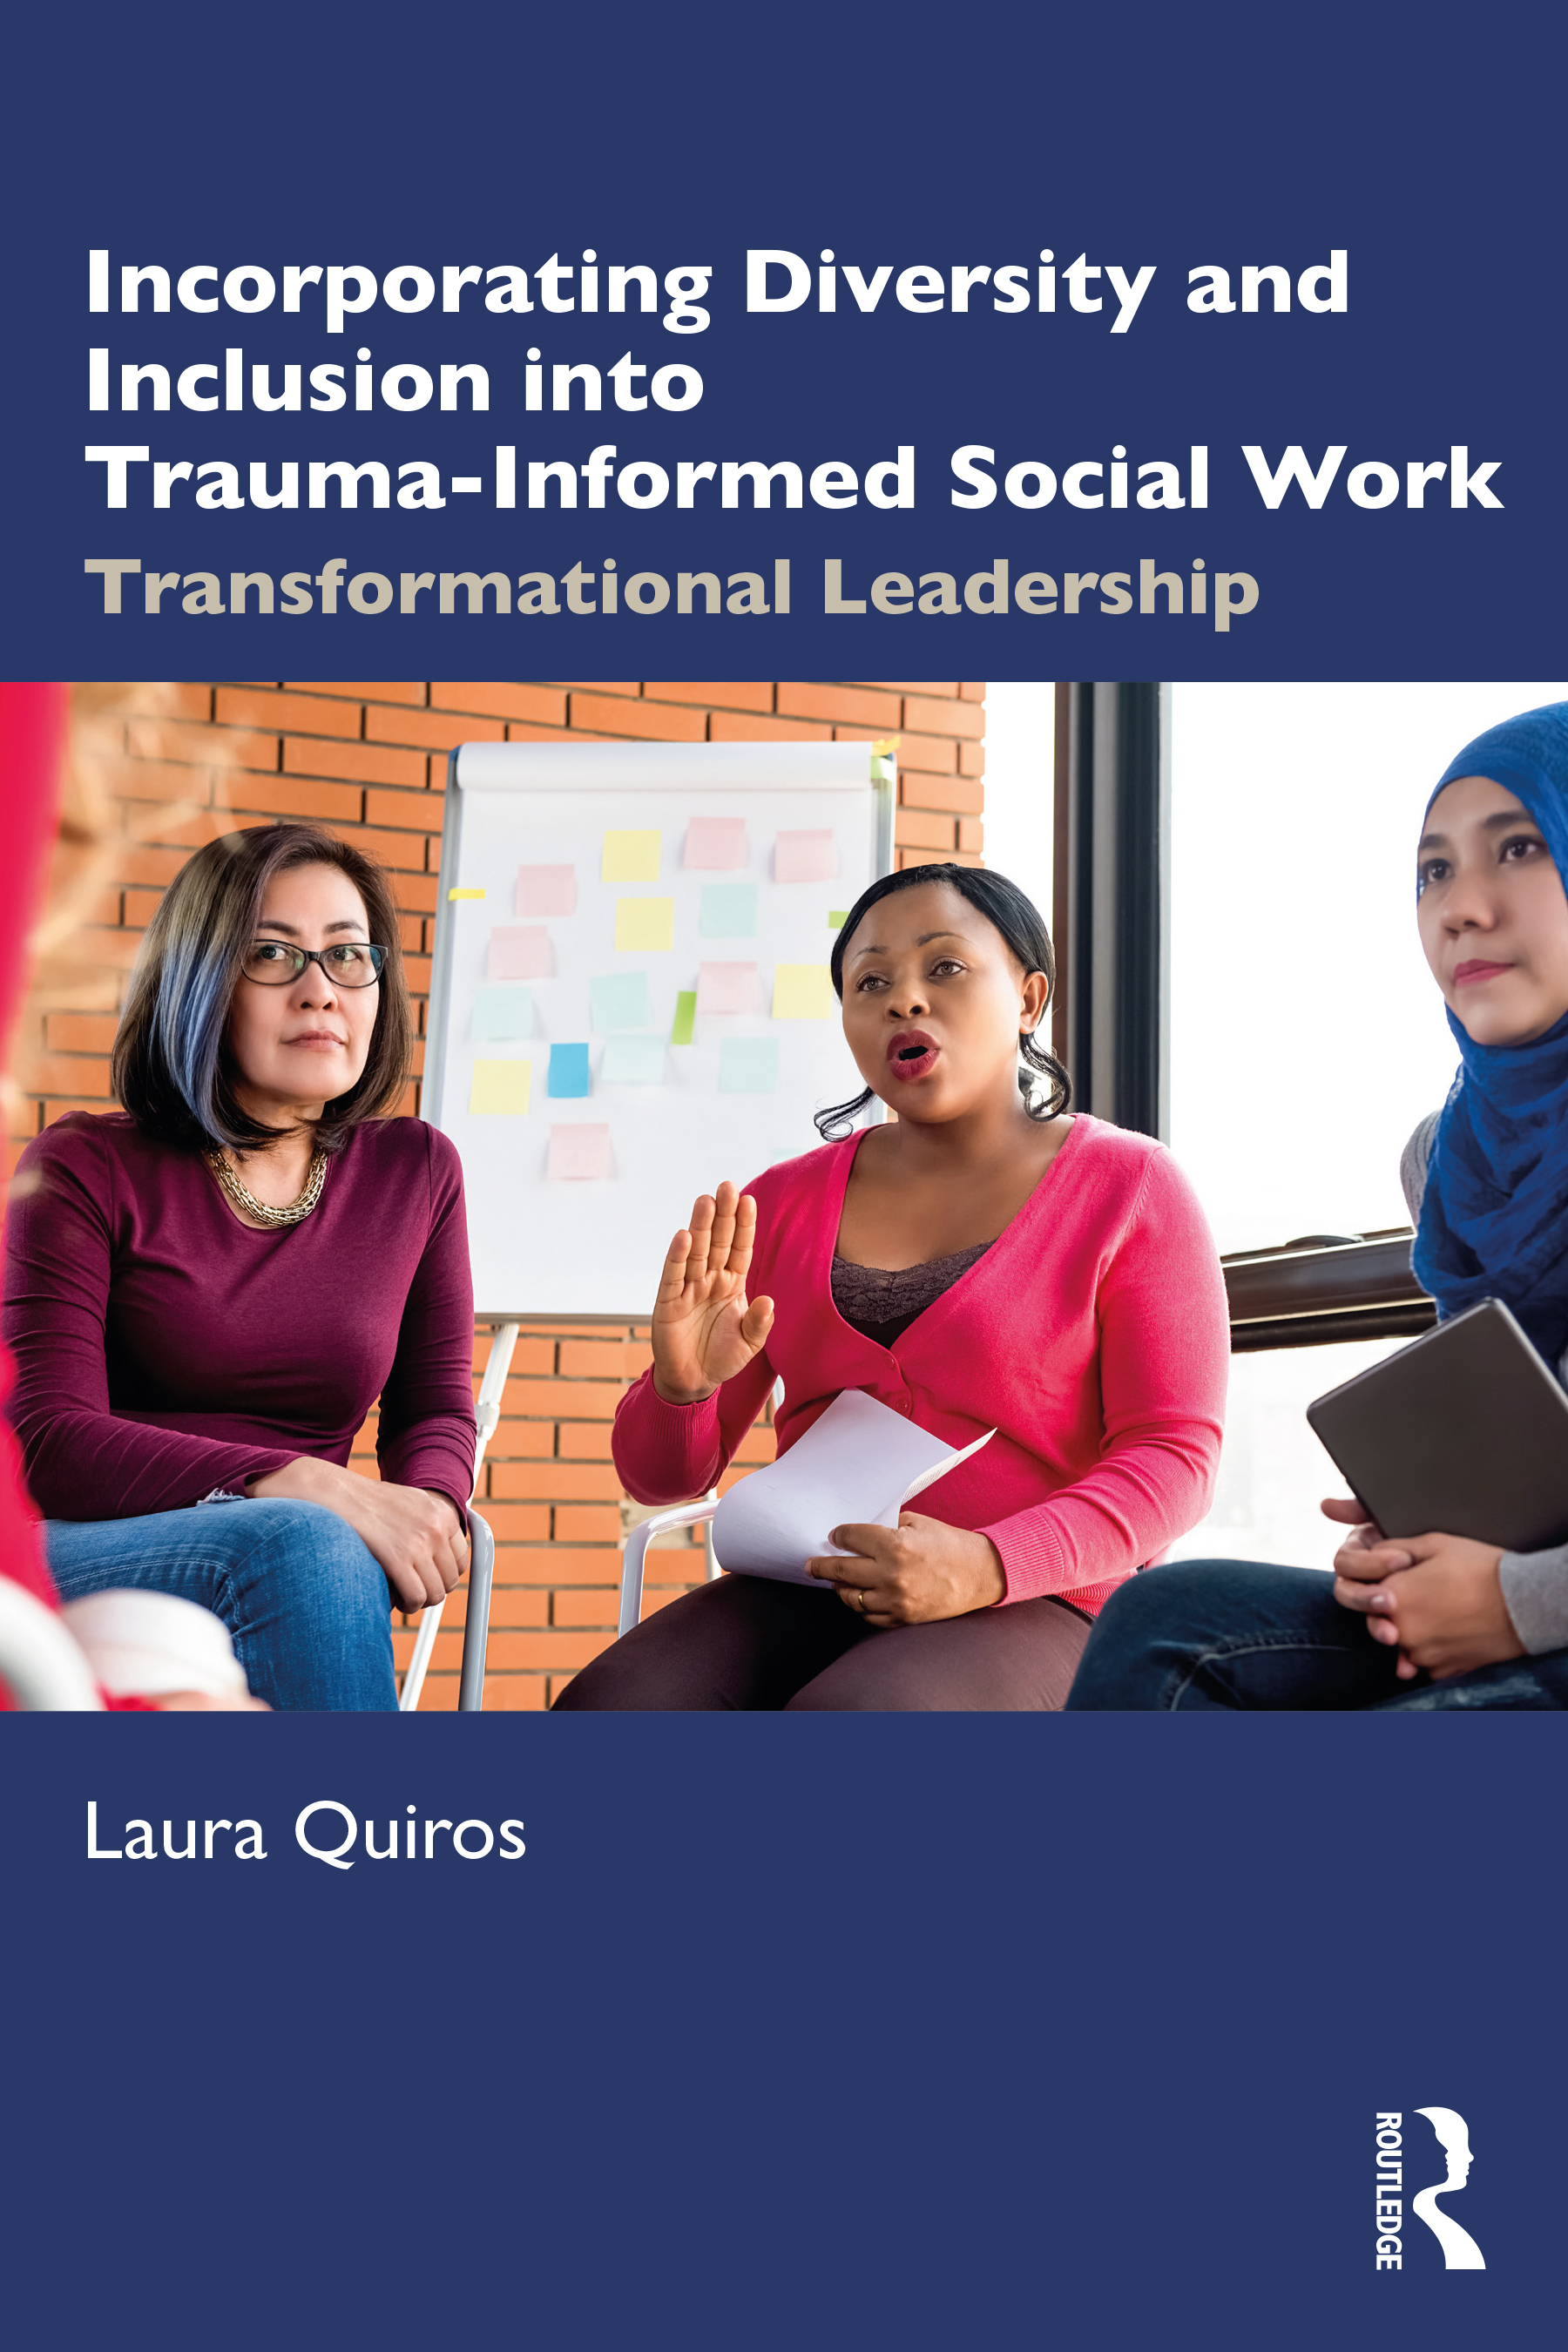 Incorporating Diversity and Inclusion into Trauma-Informed Social Work